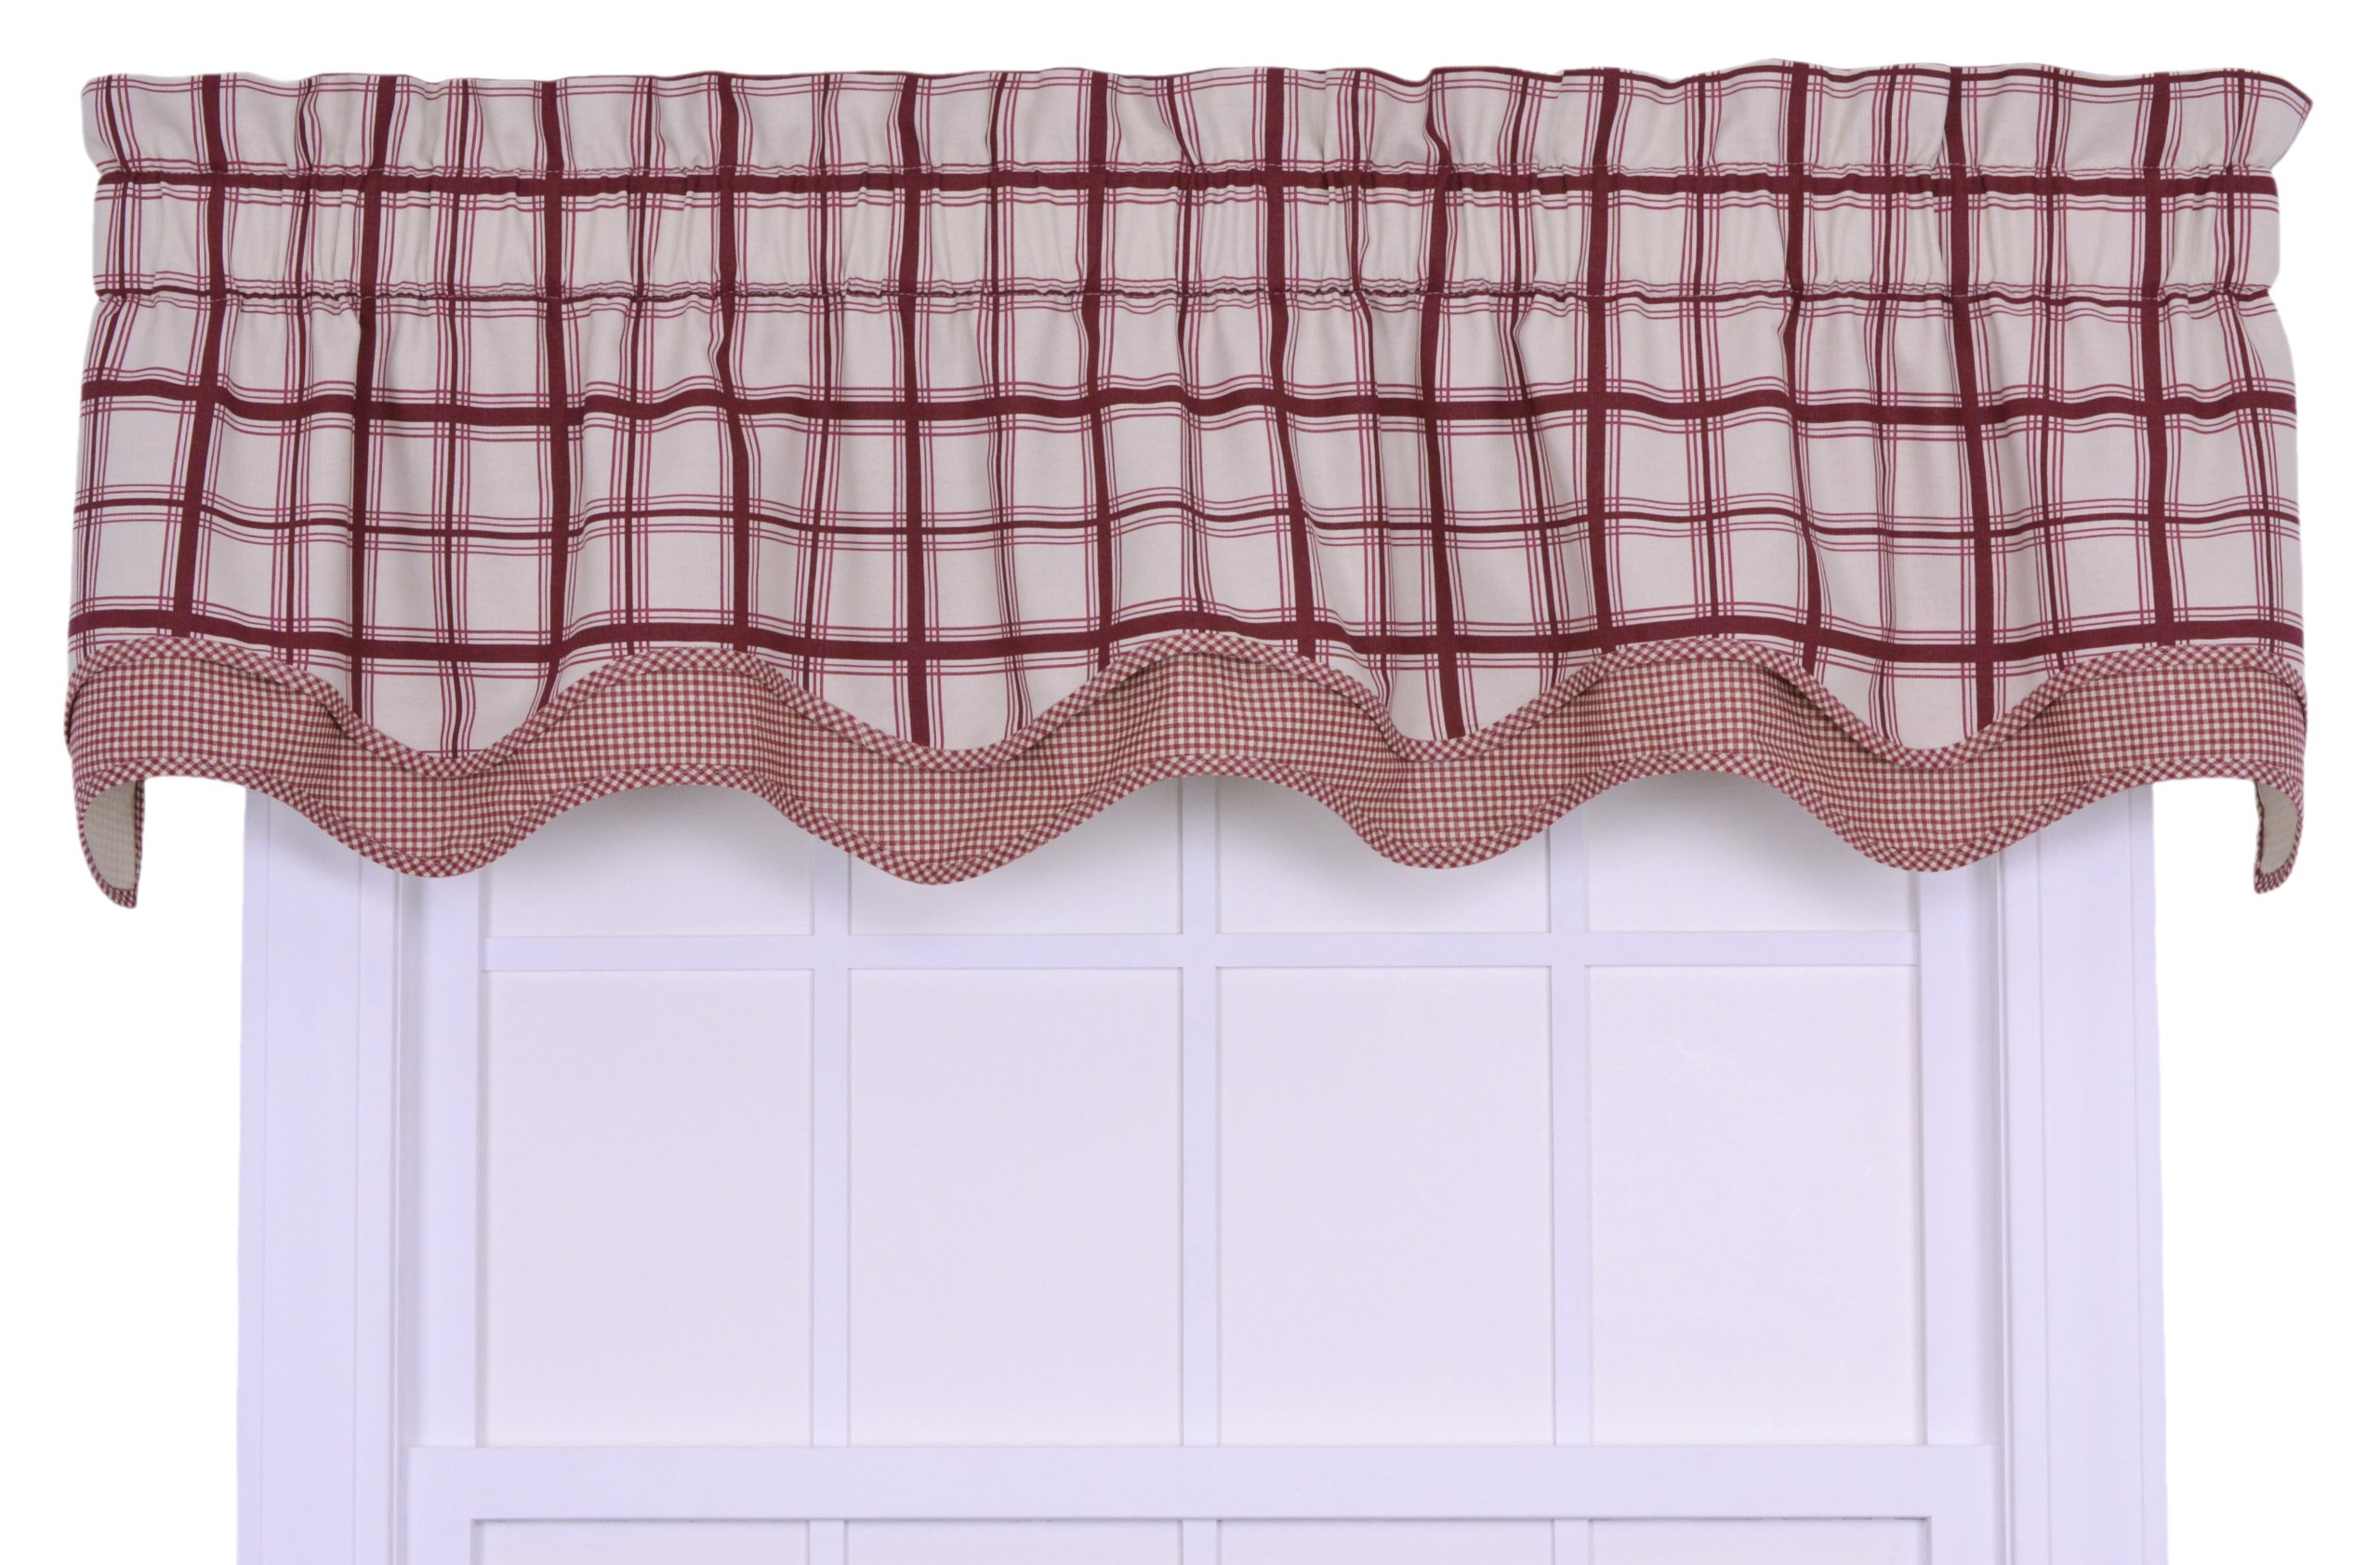 Logan Large Scale Plaid Bradford Valence Window Curtain, Red - 100-Percent cotton duck fabric for smoother draping effect Constructed with a decorative 3-inch rod pocket; Accented by a coordinating gingham check print and bias binding bottom layer Large scale 5-inch Monochromatic plaid pattern creates a classic, warm and inviting feel to any room - living-room-soft-furnishings, living-room, draperies-curtains-shades - 91sc4vpC9wL -